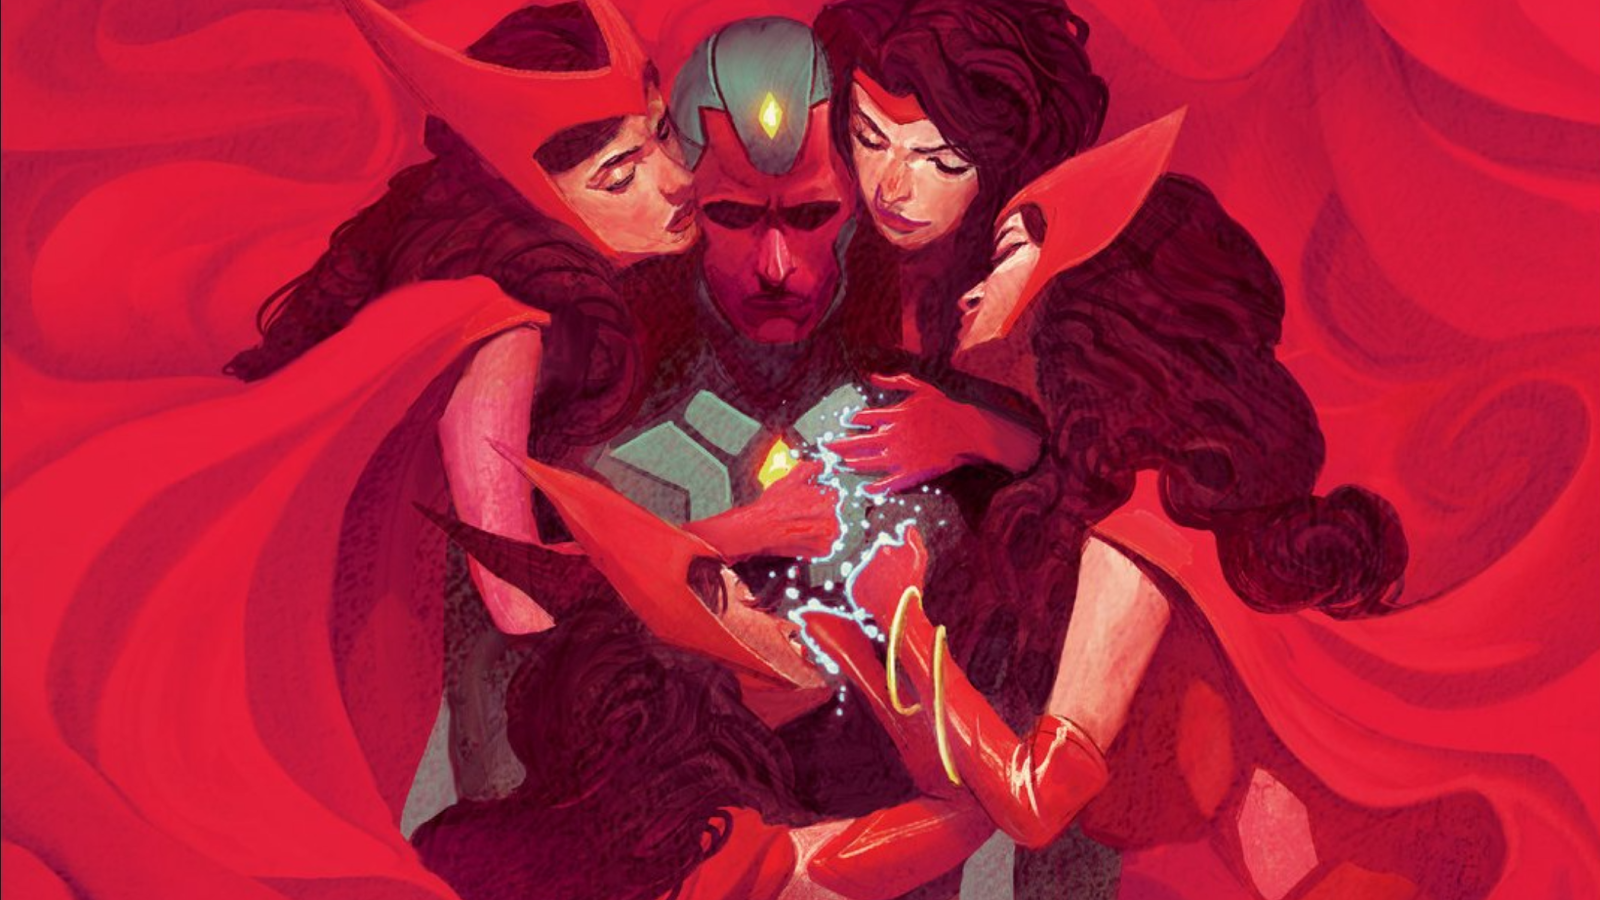 The Vision And The Scarlet Witch Had Marvel Comics' Most